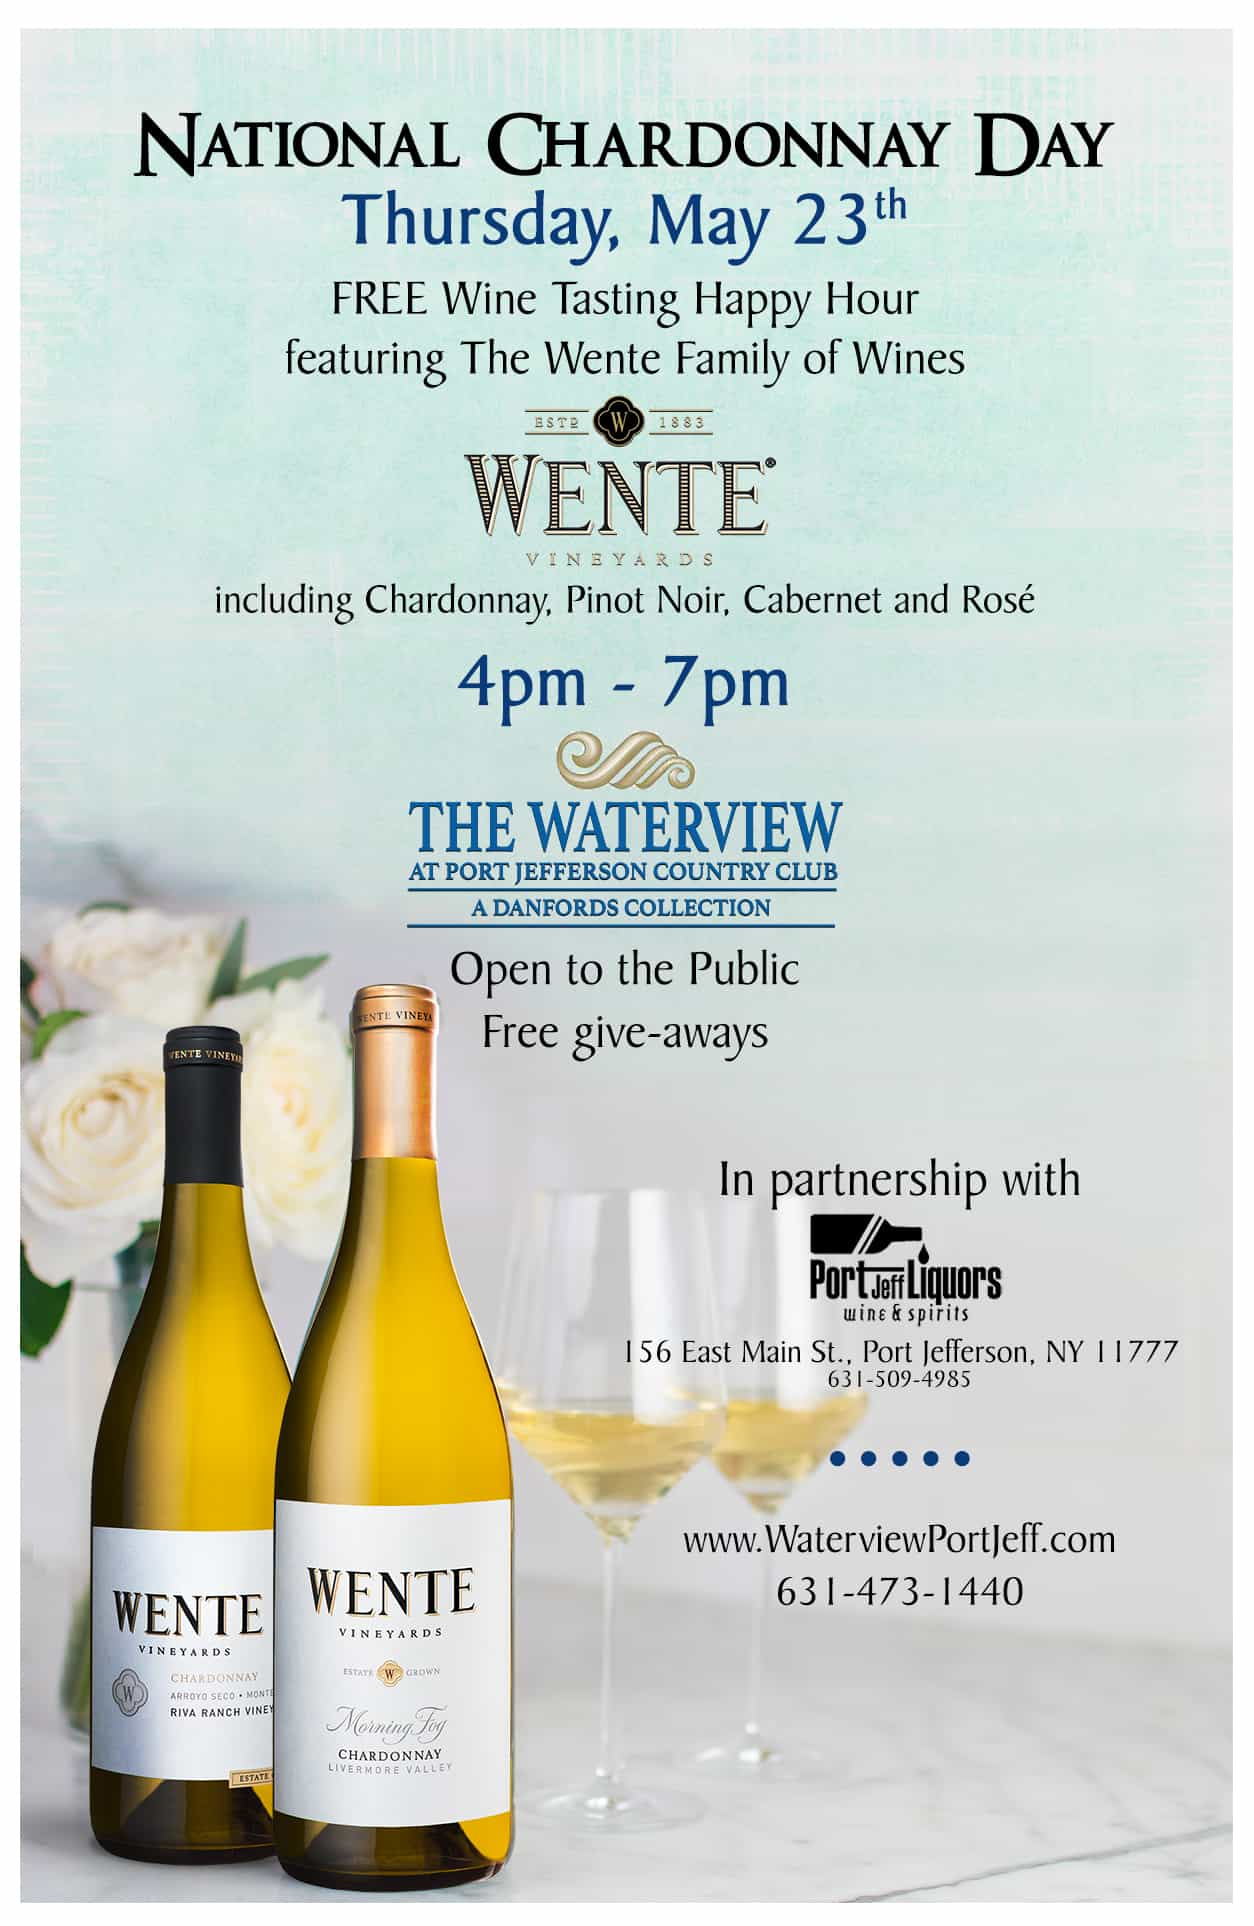 Waterview_Chardonnay Day sign | The Waterview At Port